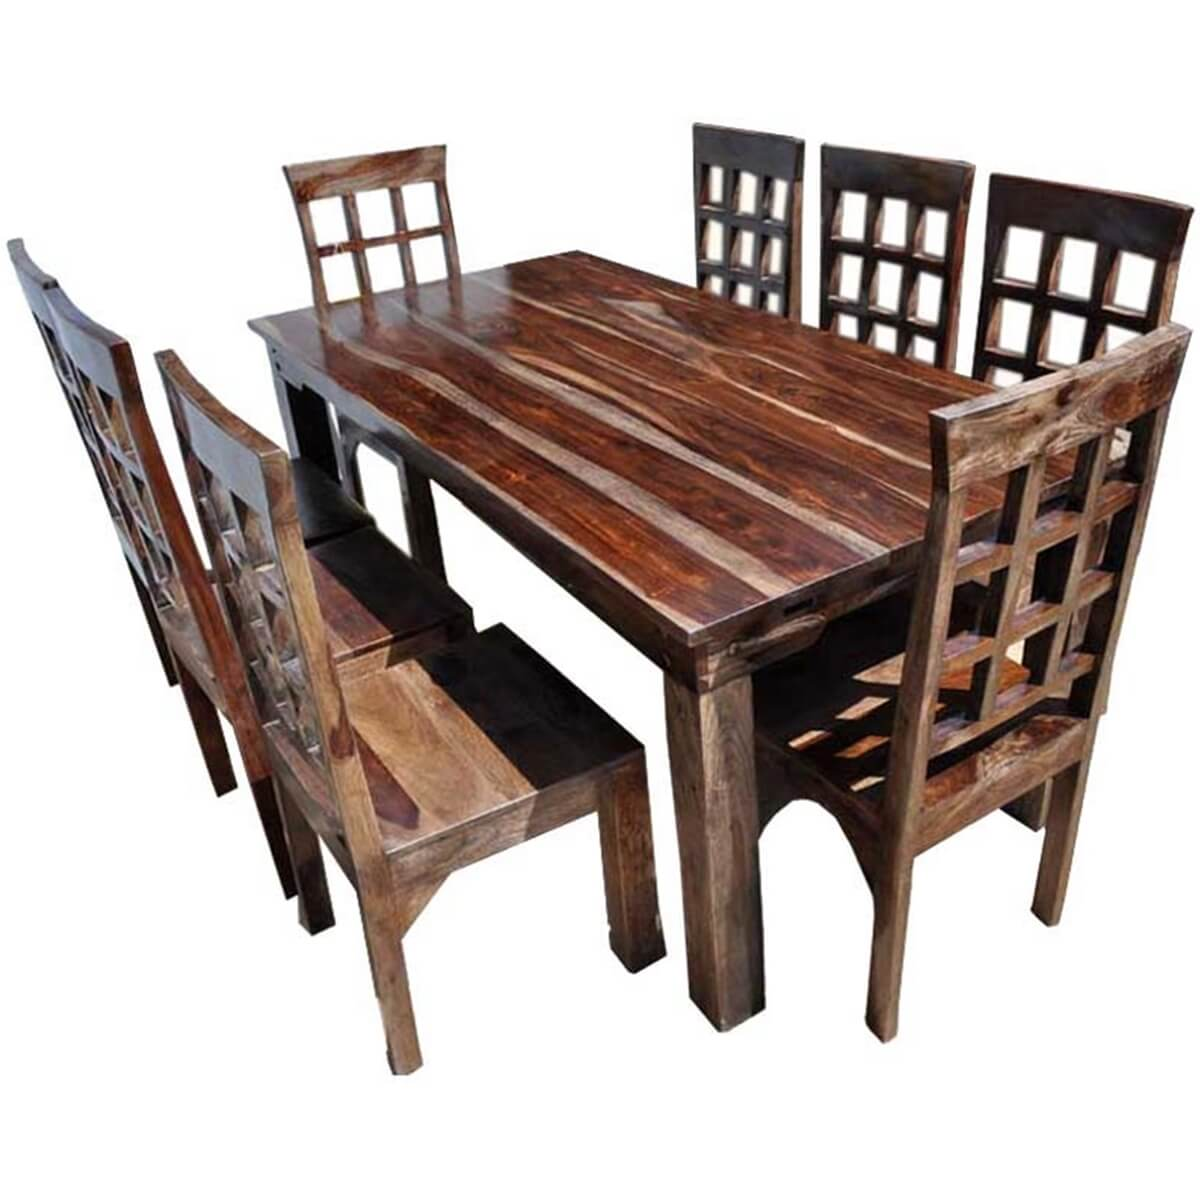 Portland Rustic Furniture Extendable Dining Room Table Chair